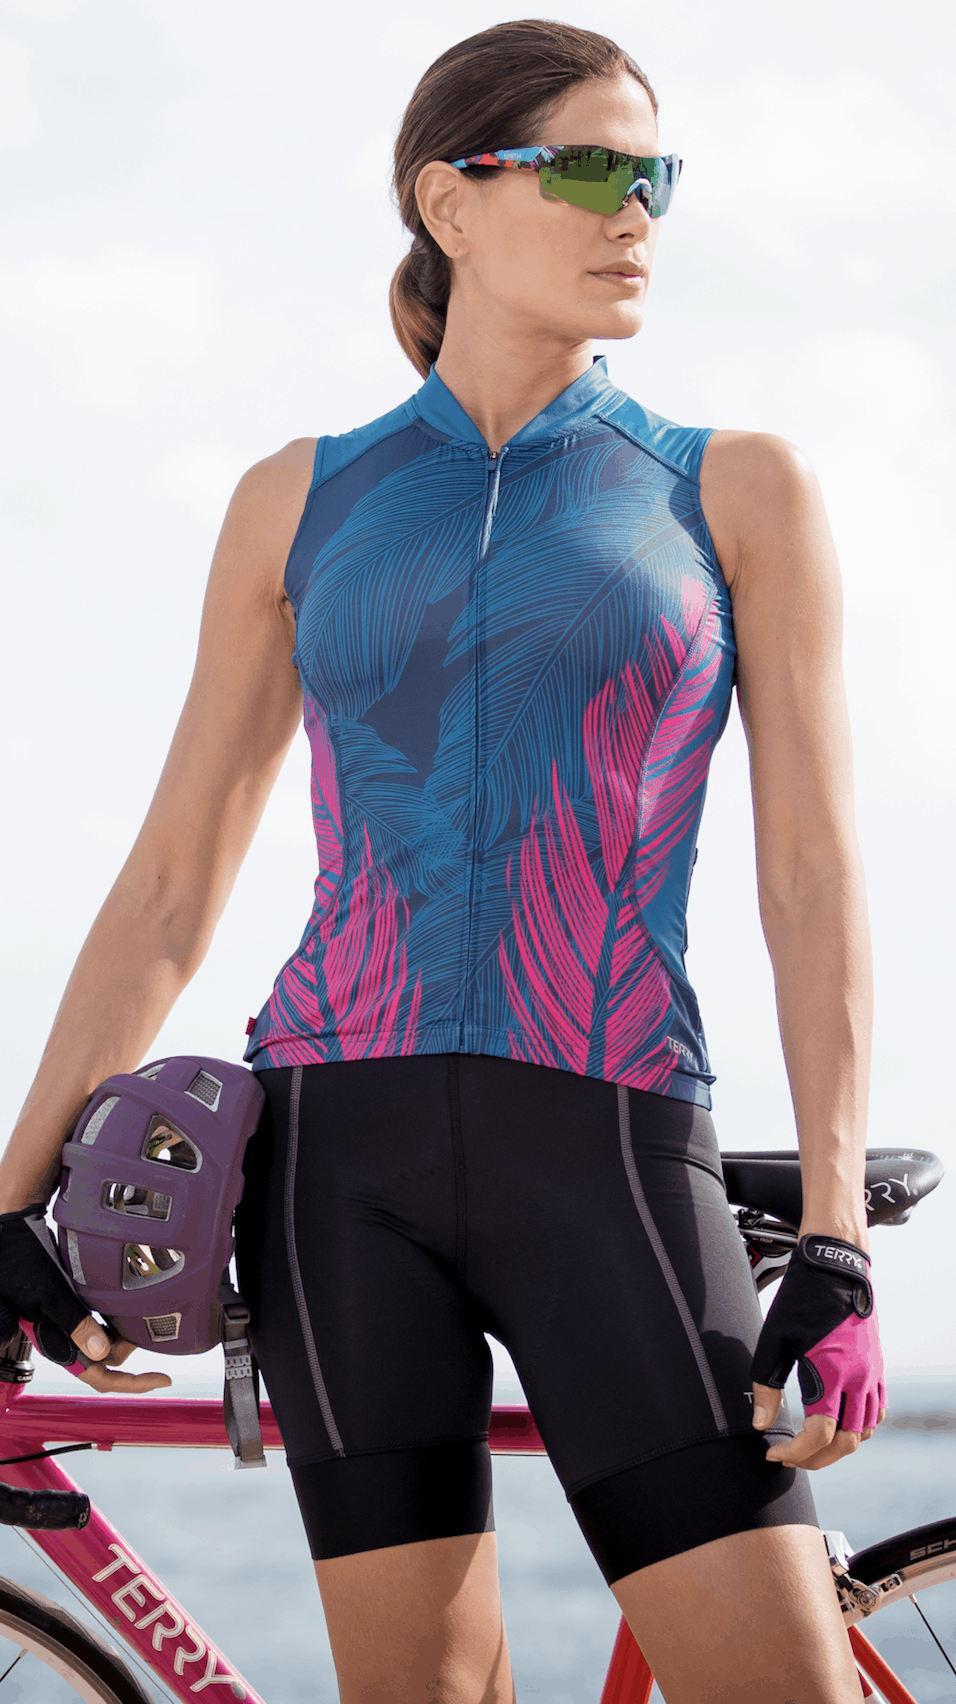 Bella Sleeveless Jerseys $62.50 (reg. $89)